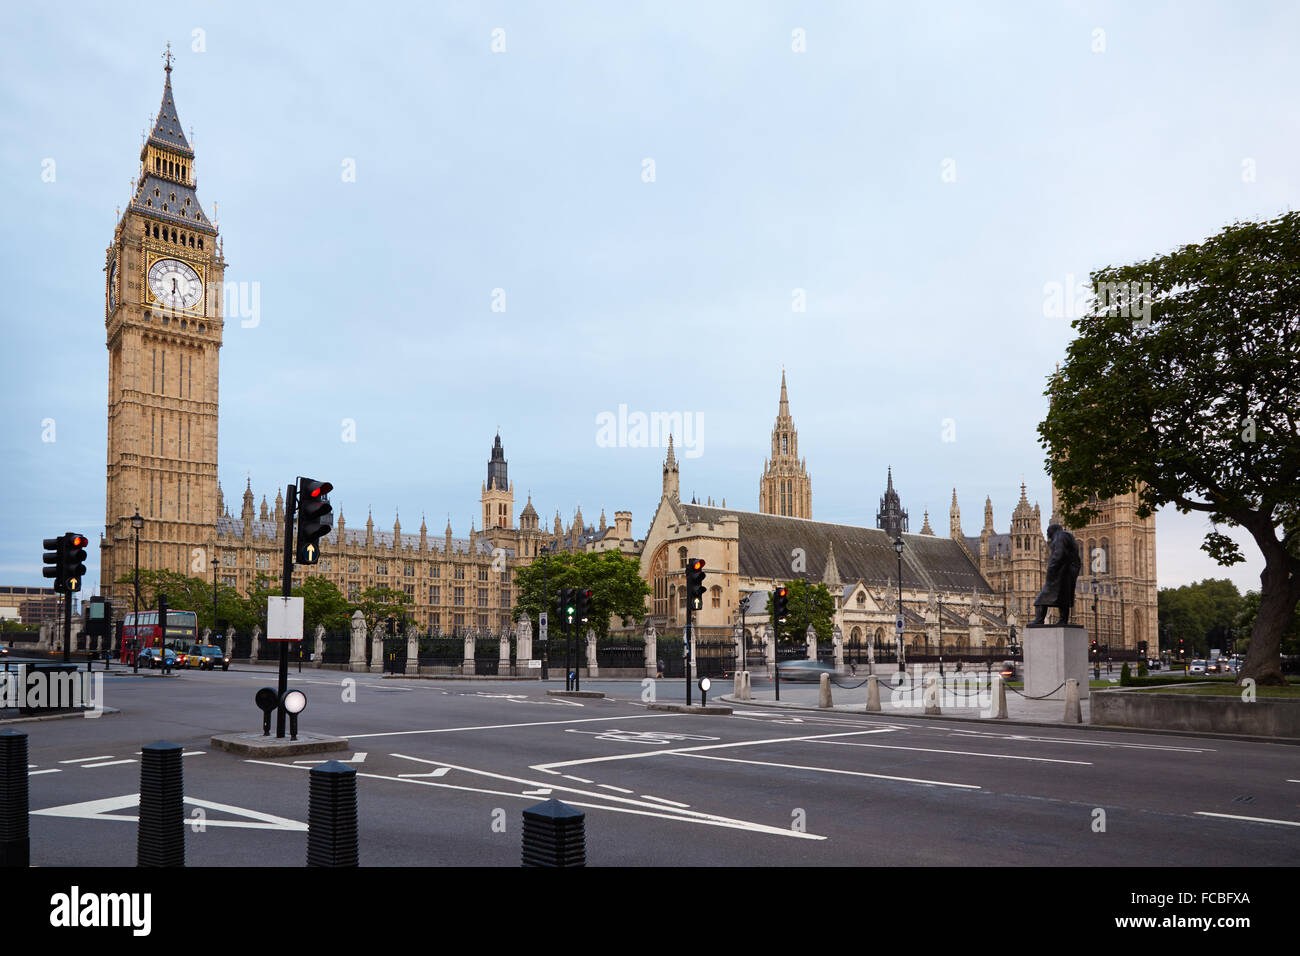 Big Ben and Houses of Parliament in the early morning, empty street in London - Stock Image